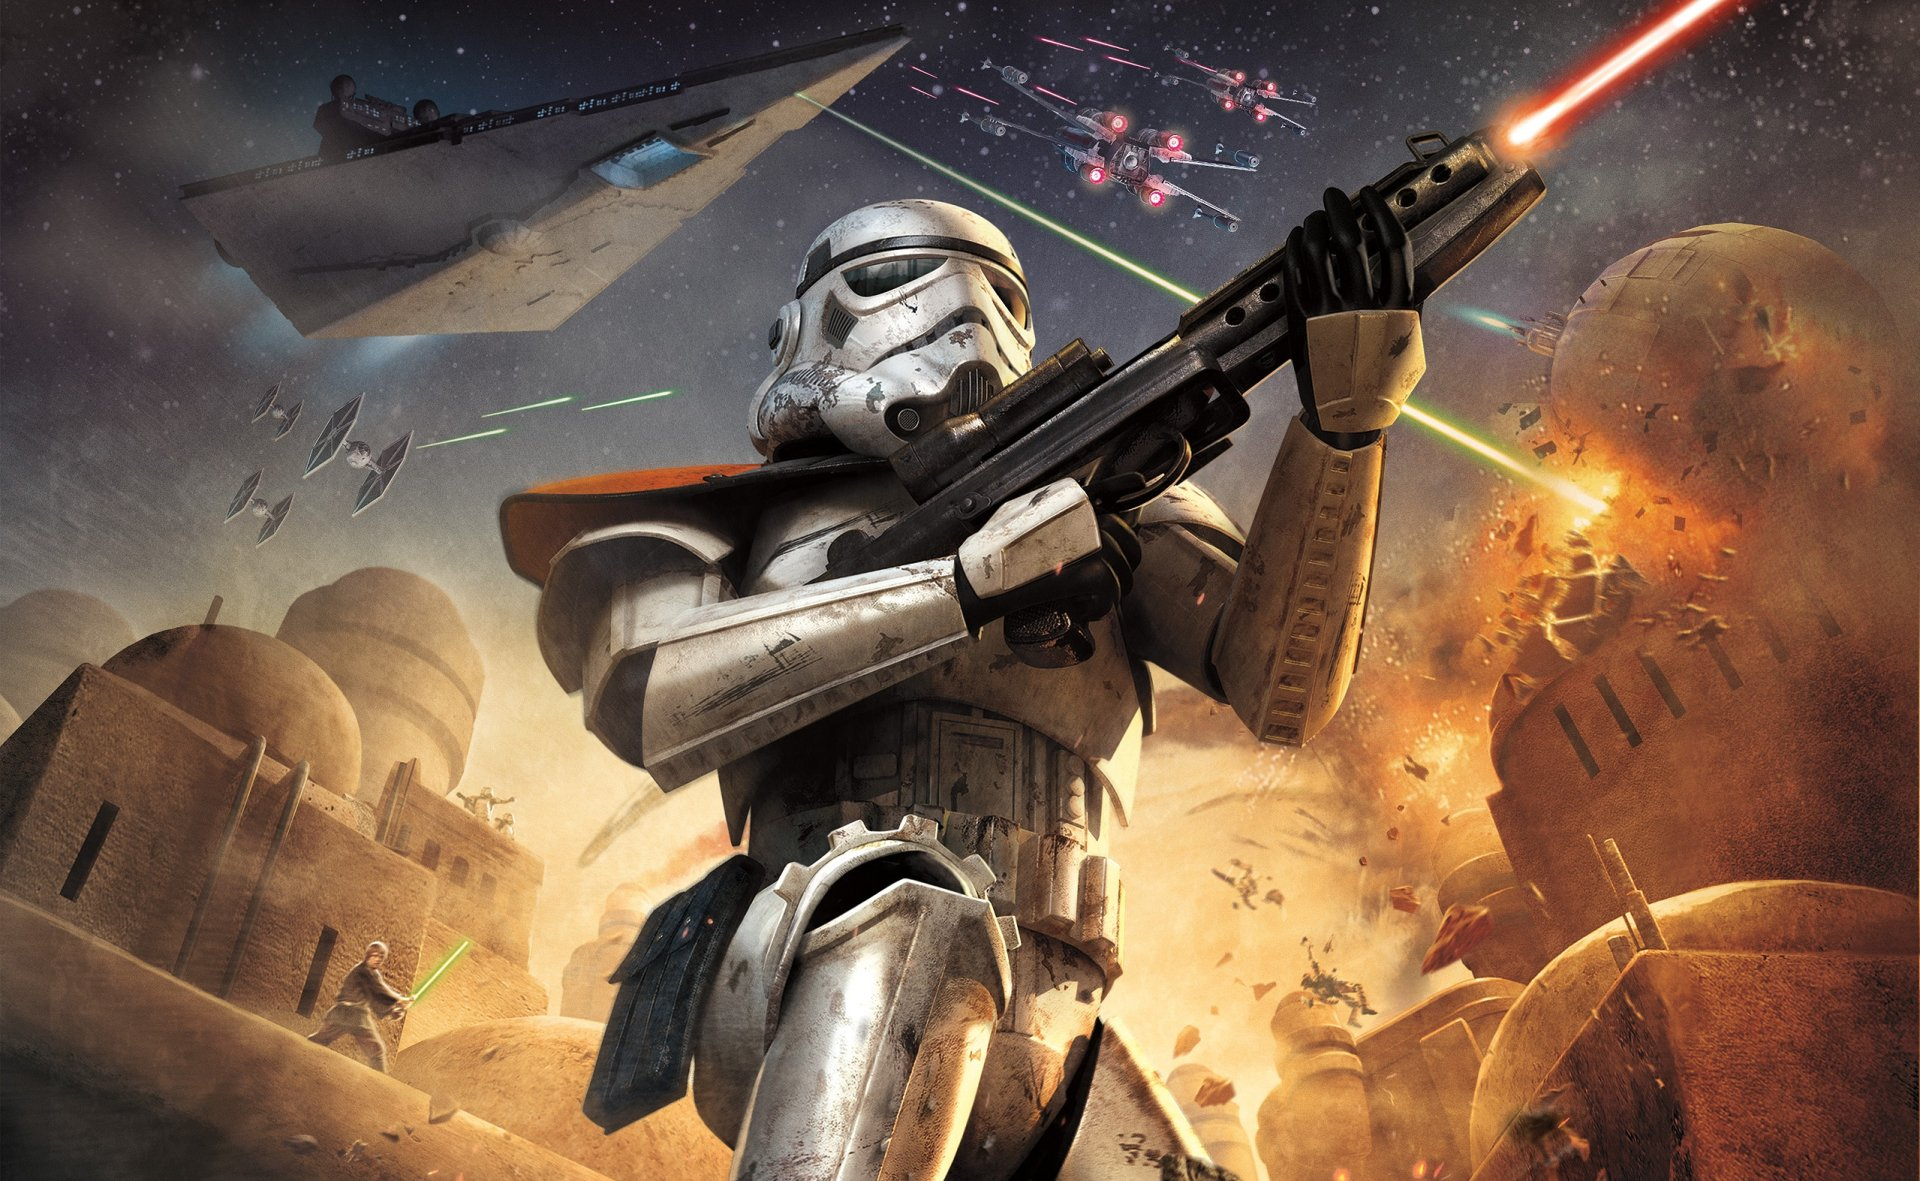 Video Game - Star Wars Battlefront: Elite Squadron  Wallpaper